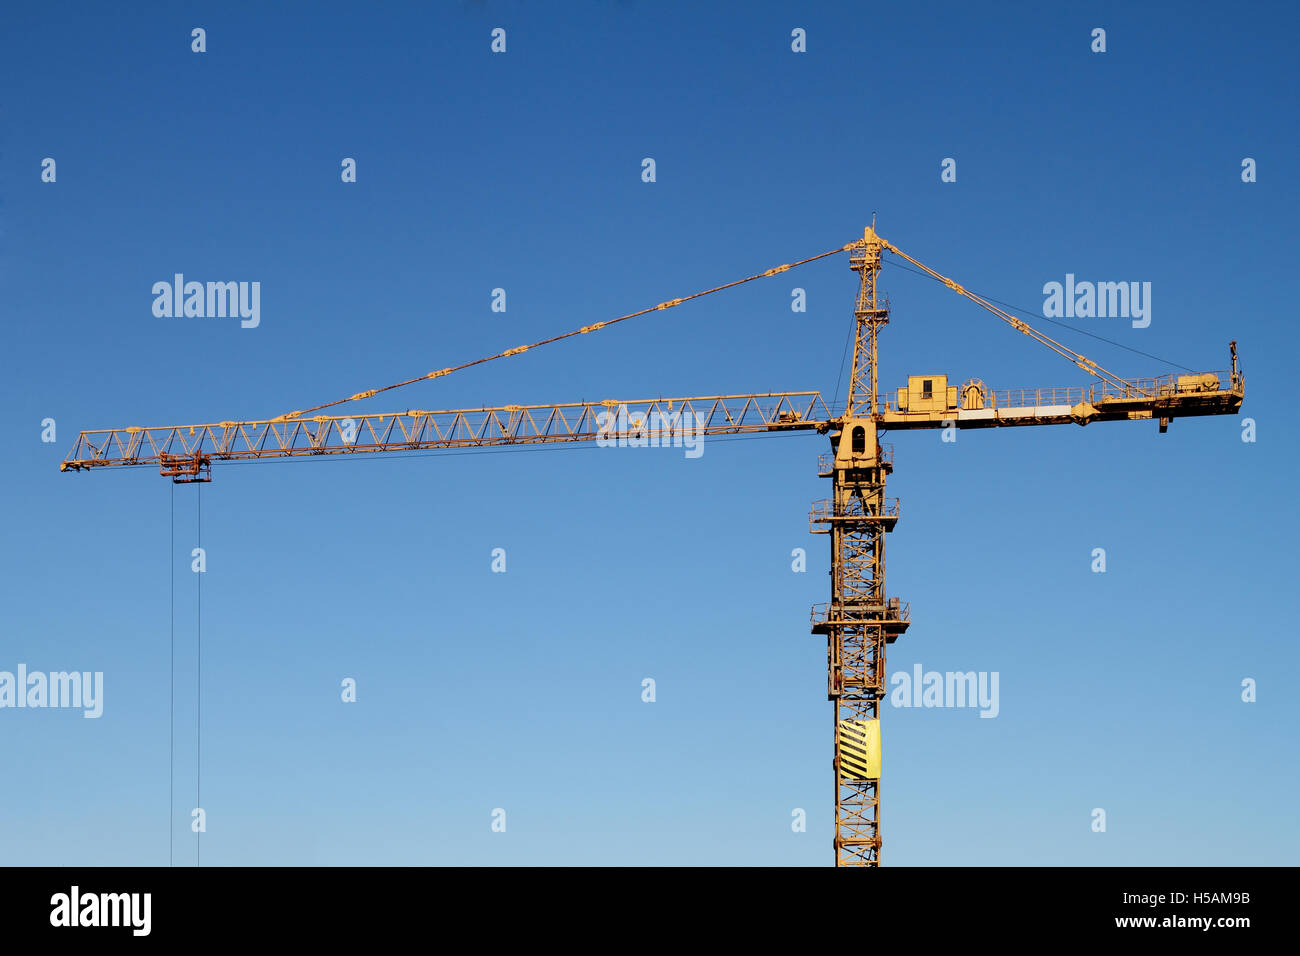 The building tower crane against the blue sky - Stock Image